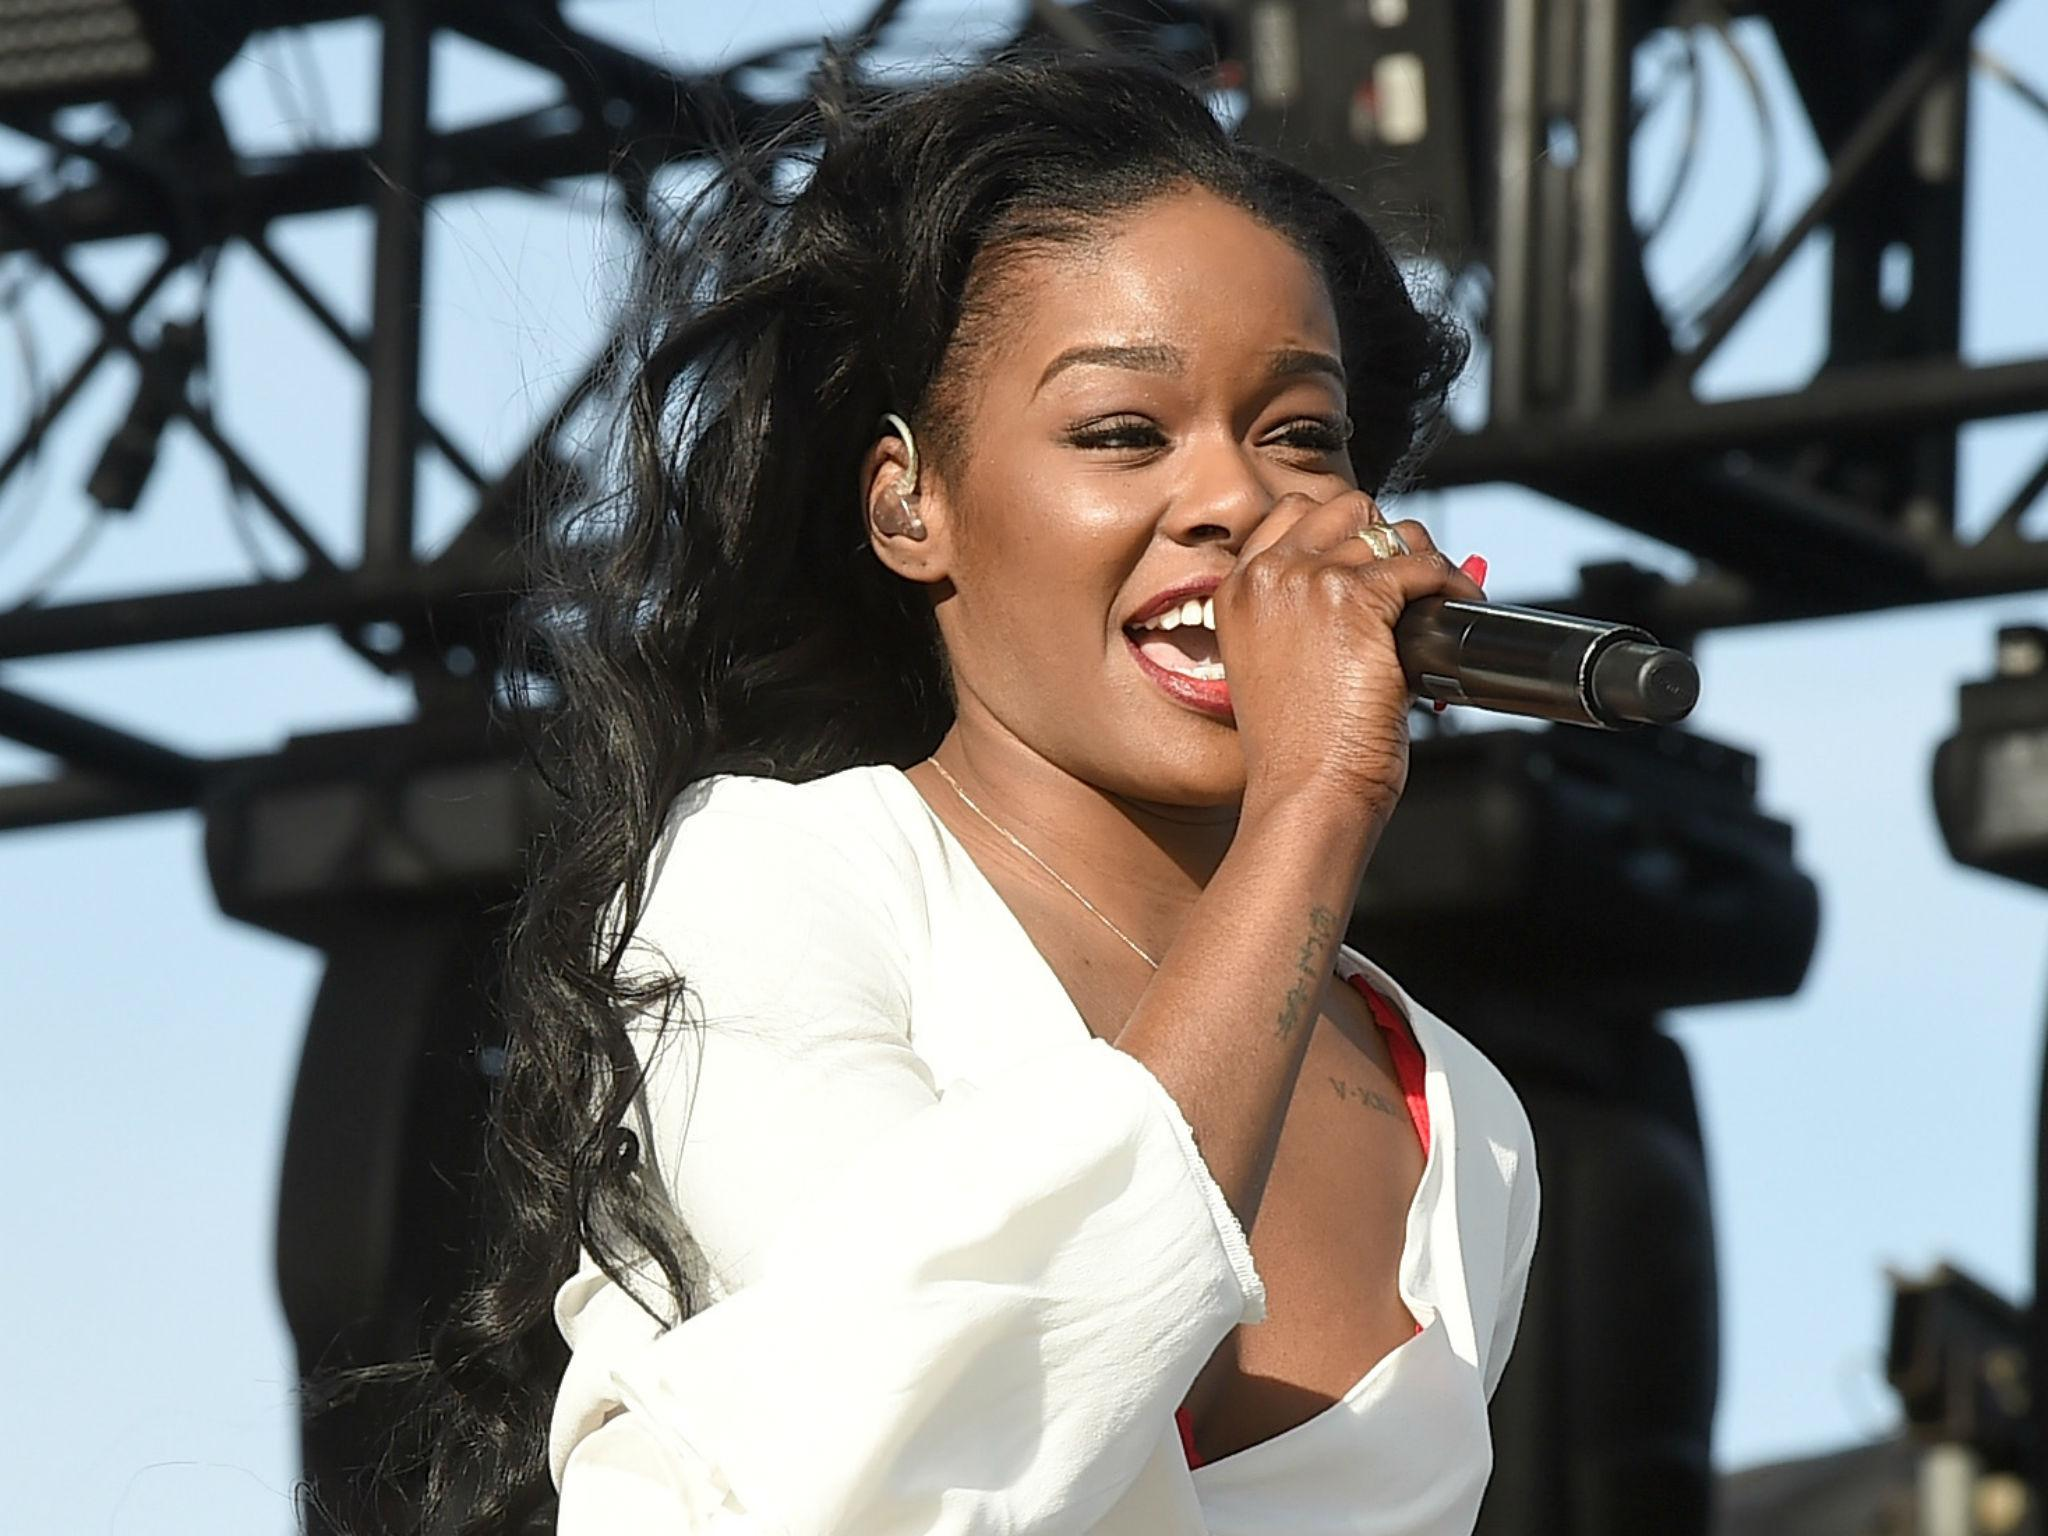 Azealia Banks defends the use of skin lightening products ...